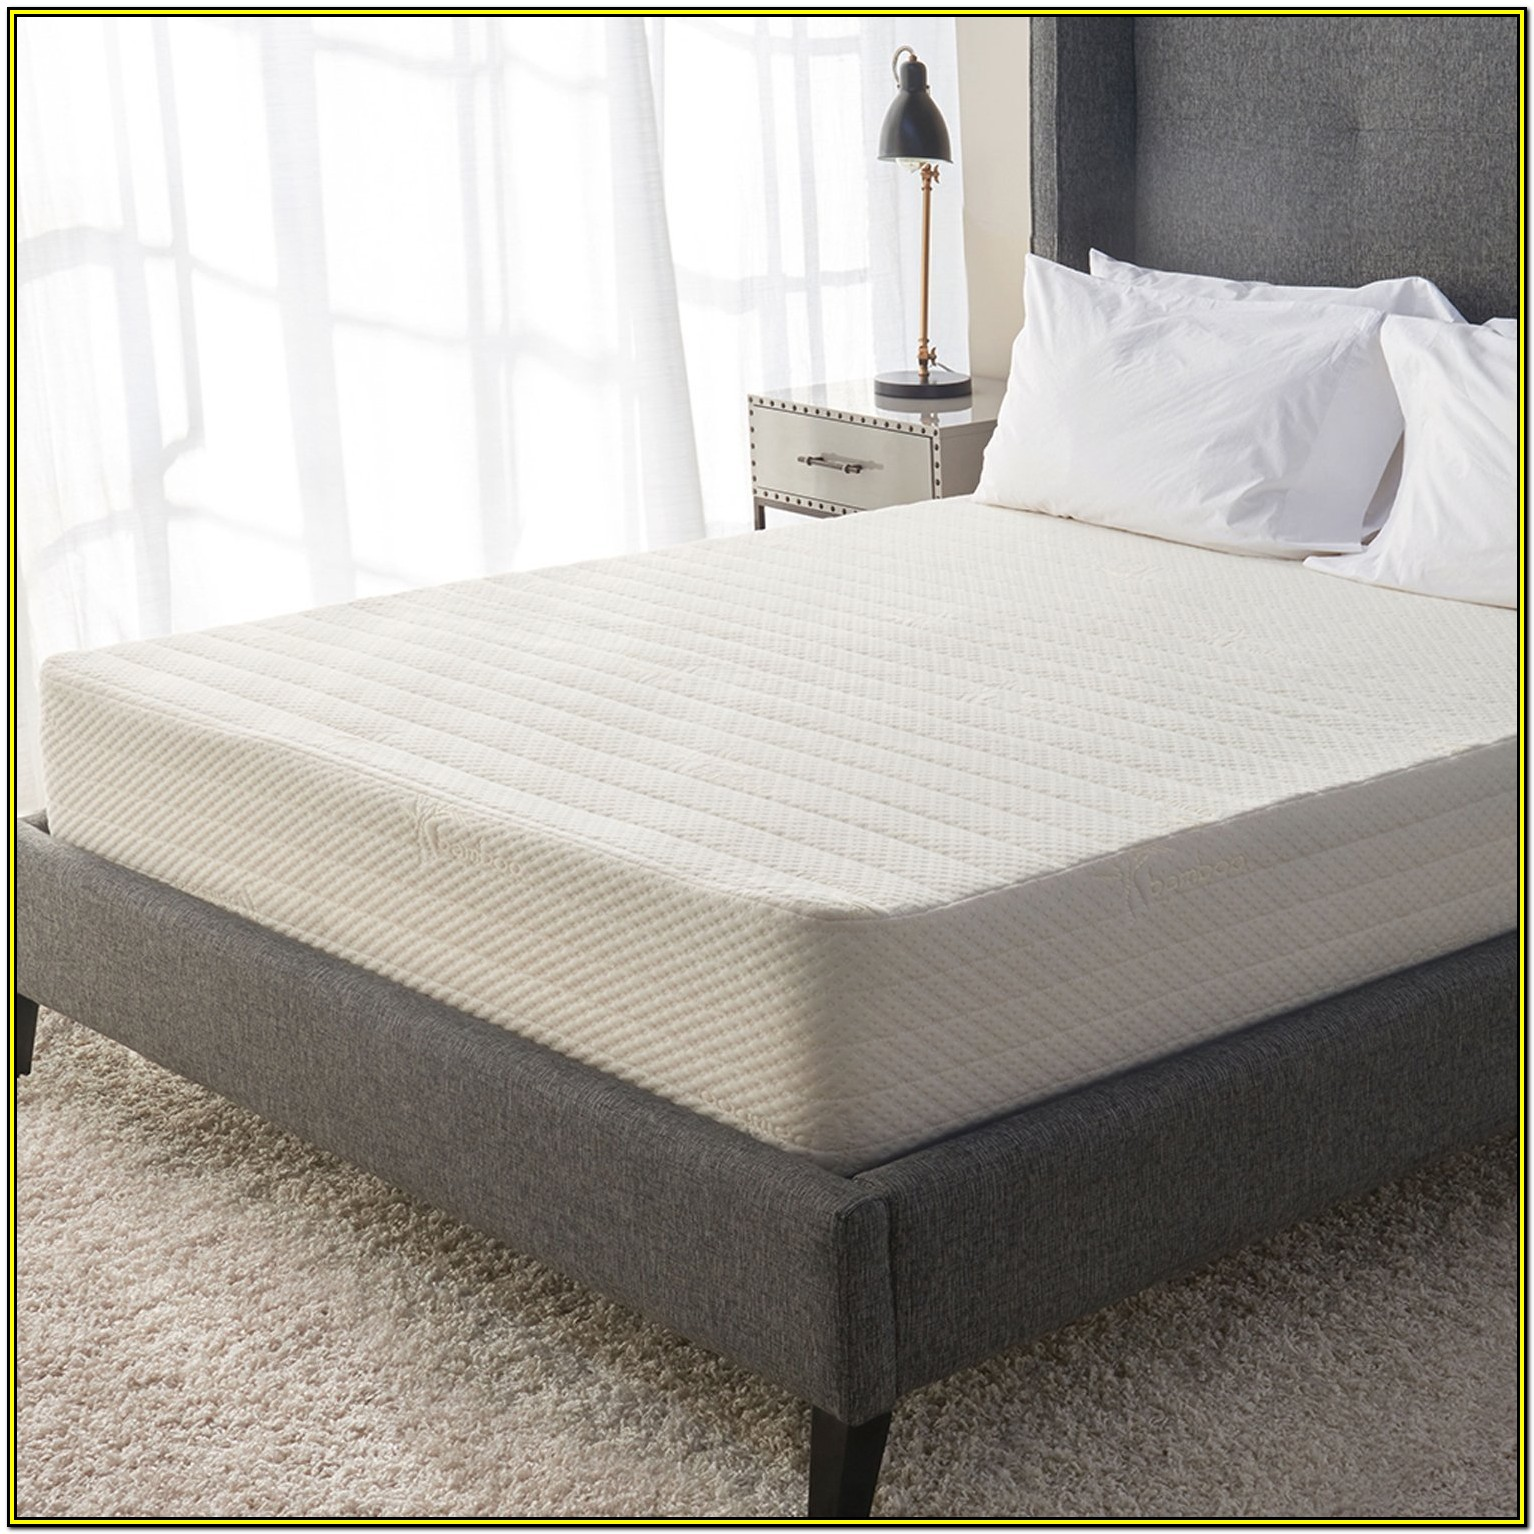 Best Bed For Side Sleepers Nz